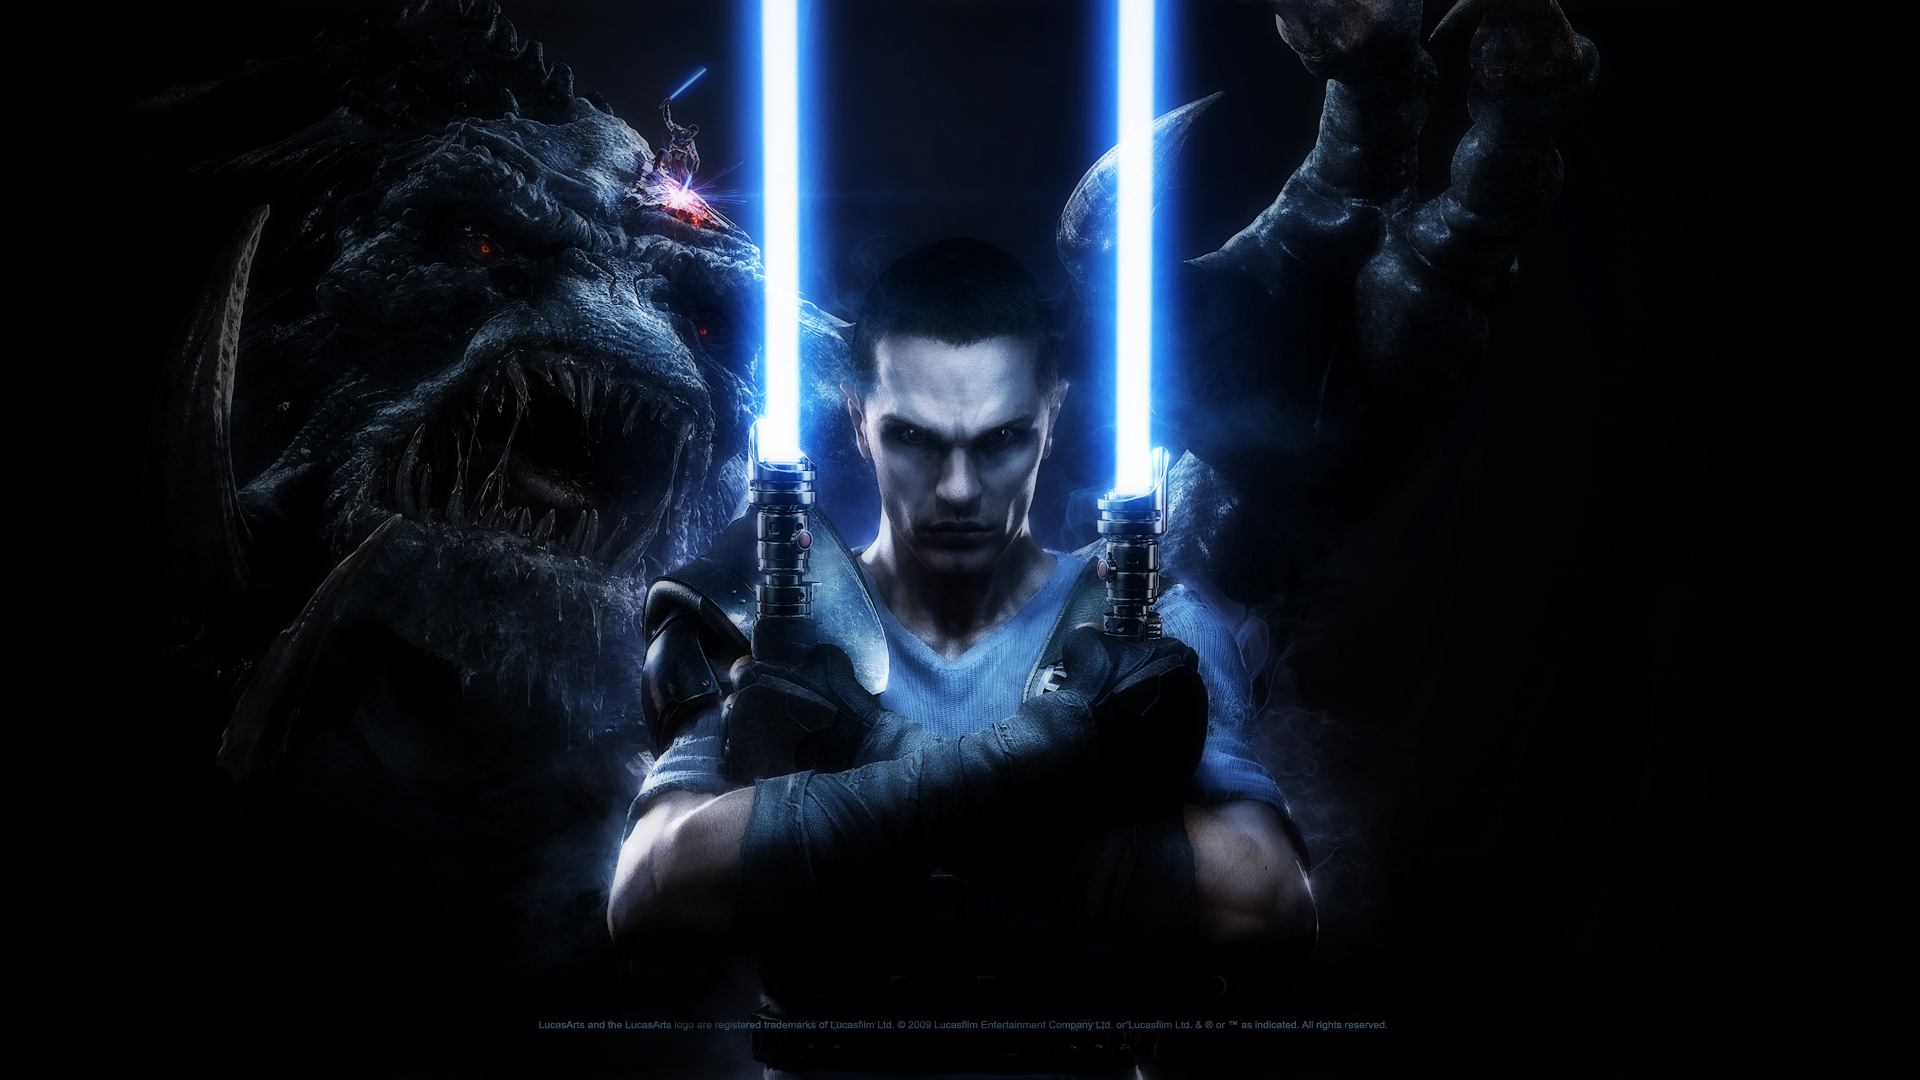 Star Wars Unleashed Wallpapers HD Wallpapers 1920x1080